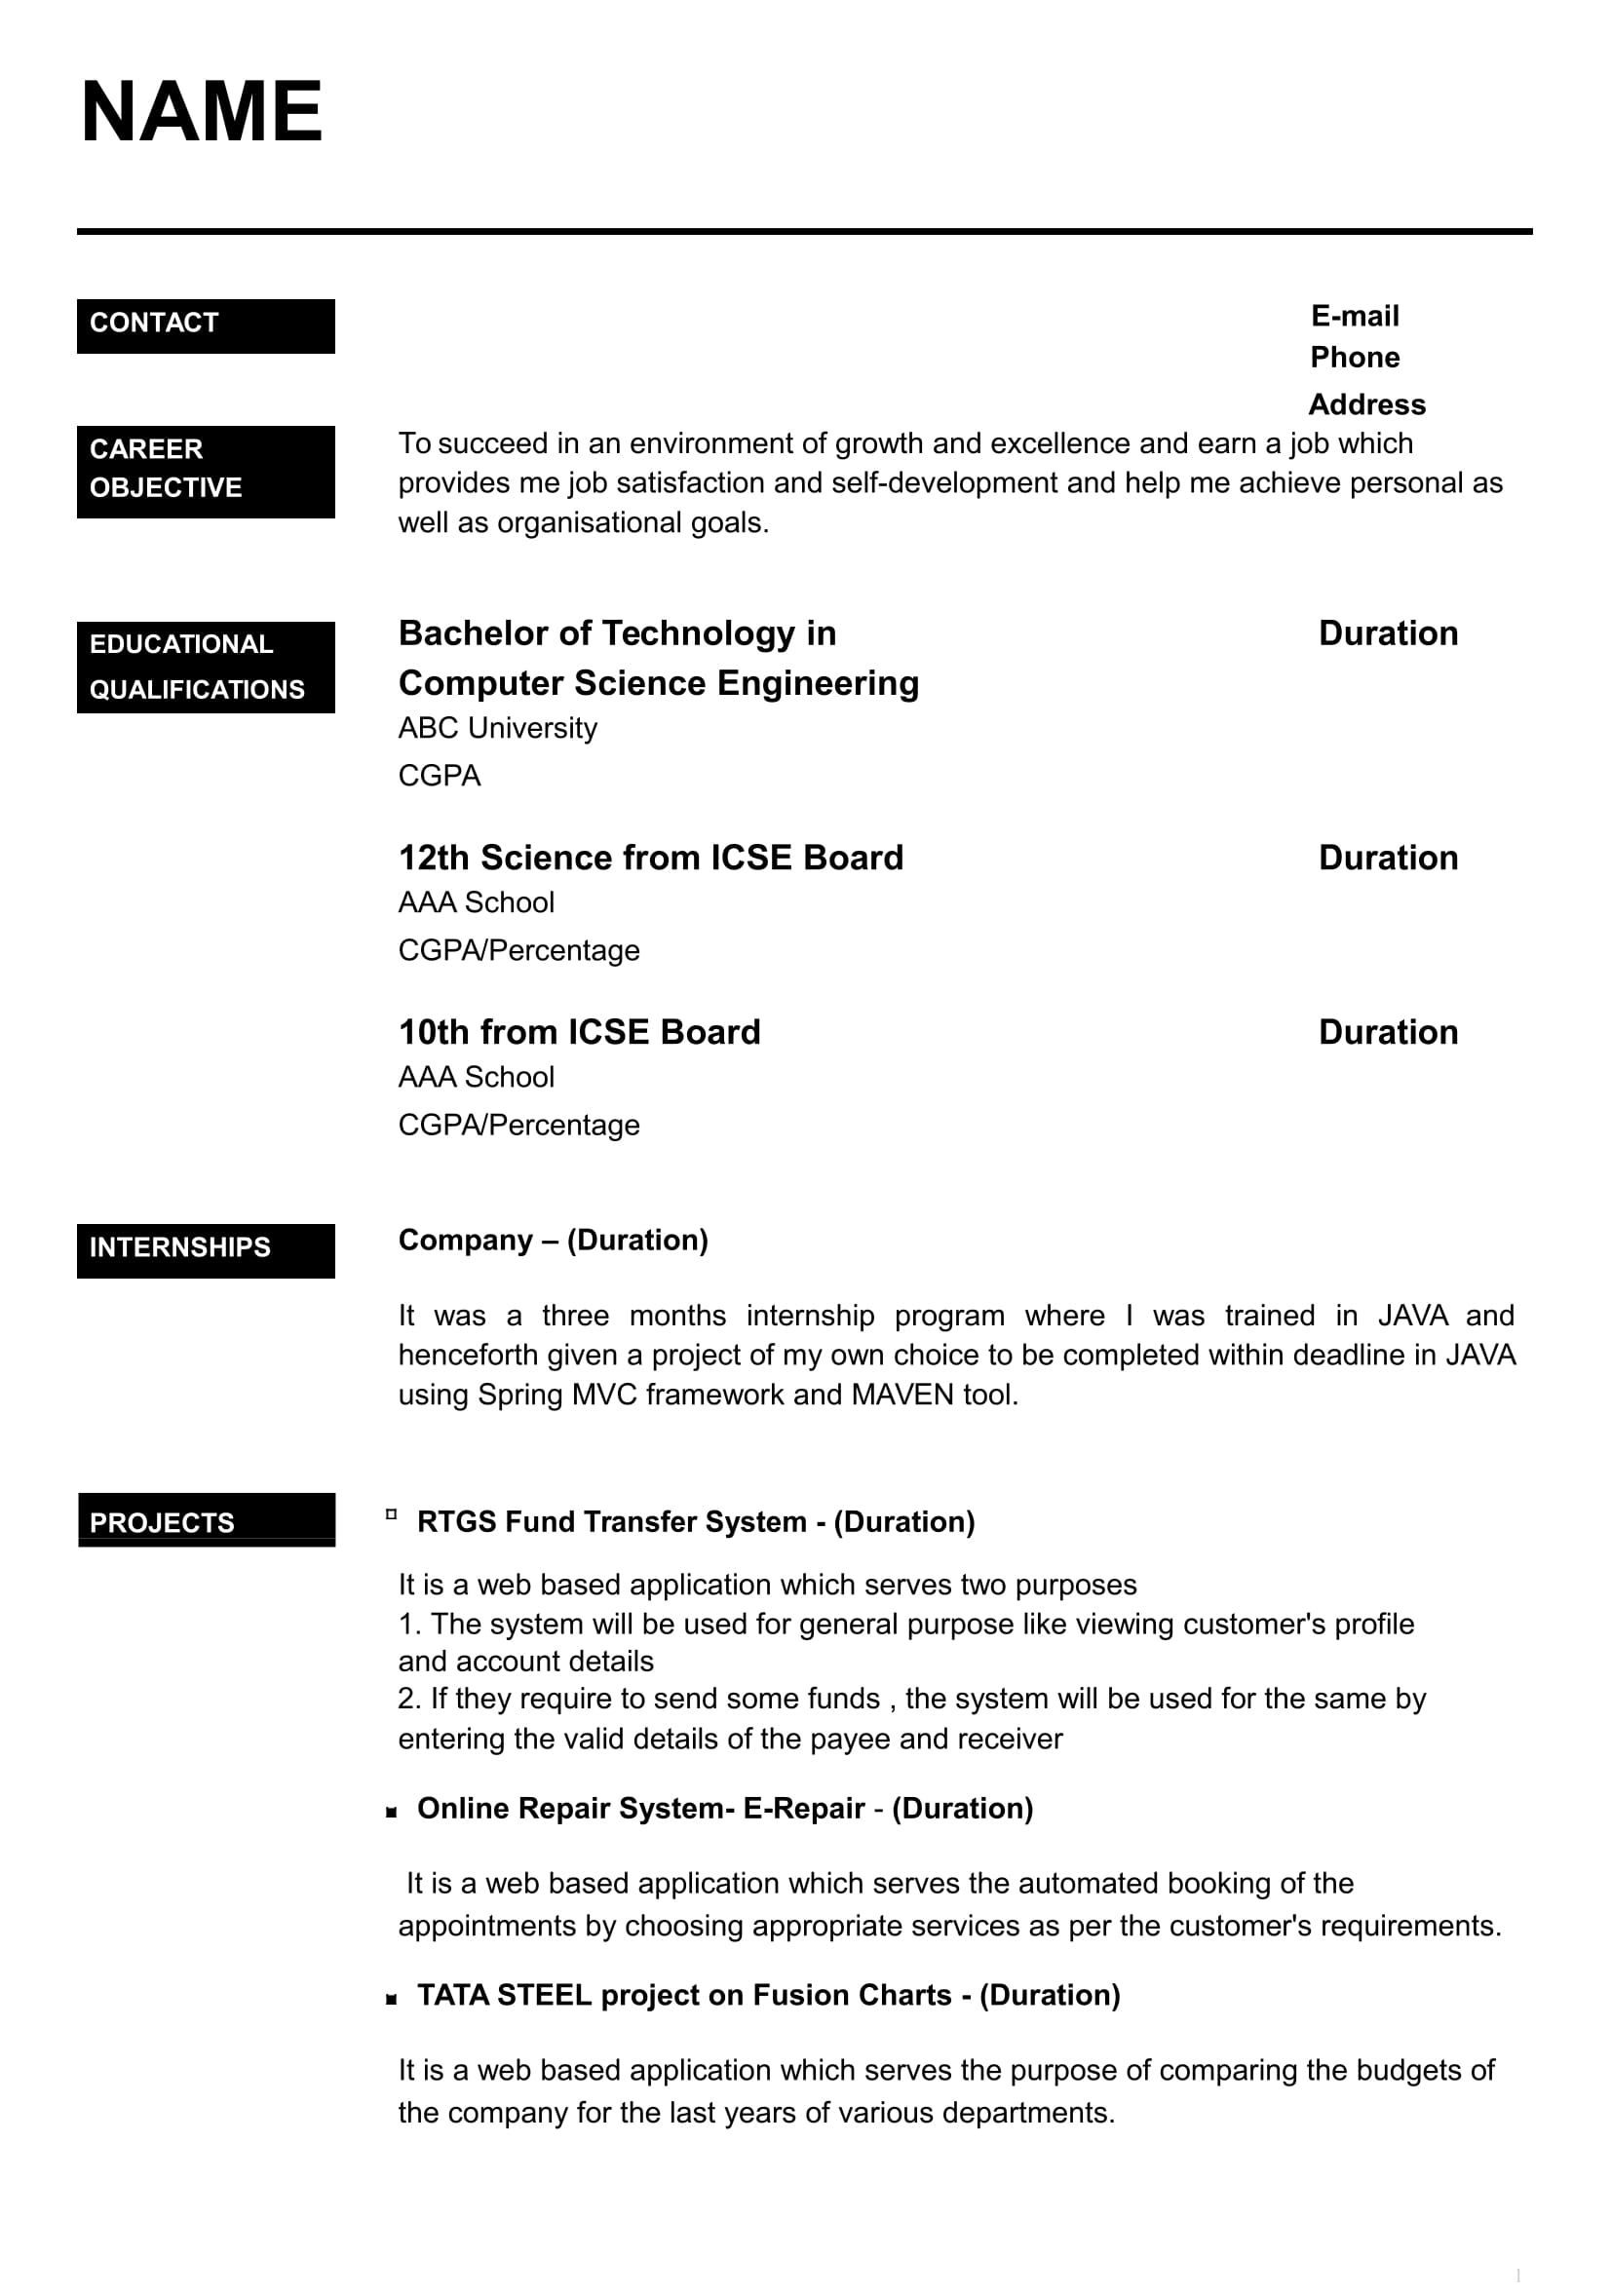 resume templates for freshers free word format awesome job template best latest social Resume Latest Resume Format 2017 For Freshers